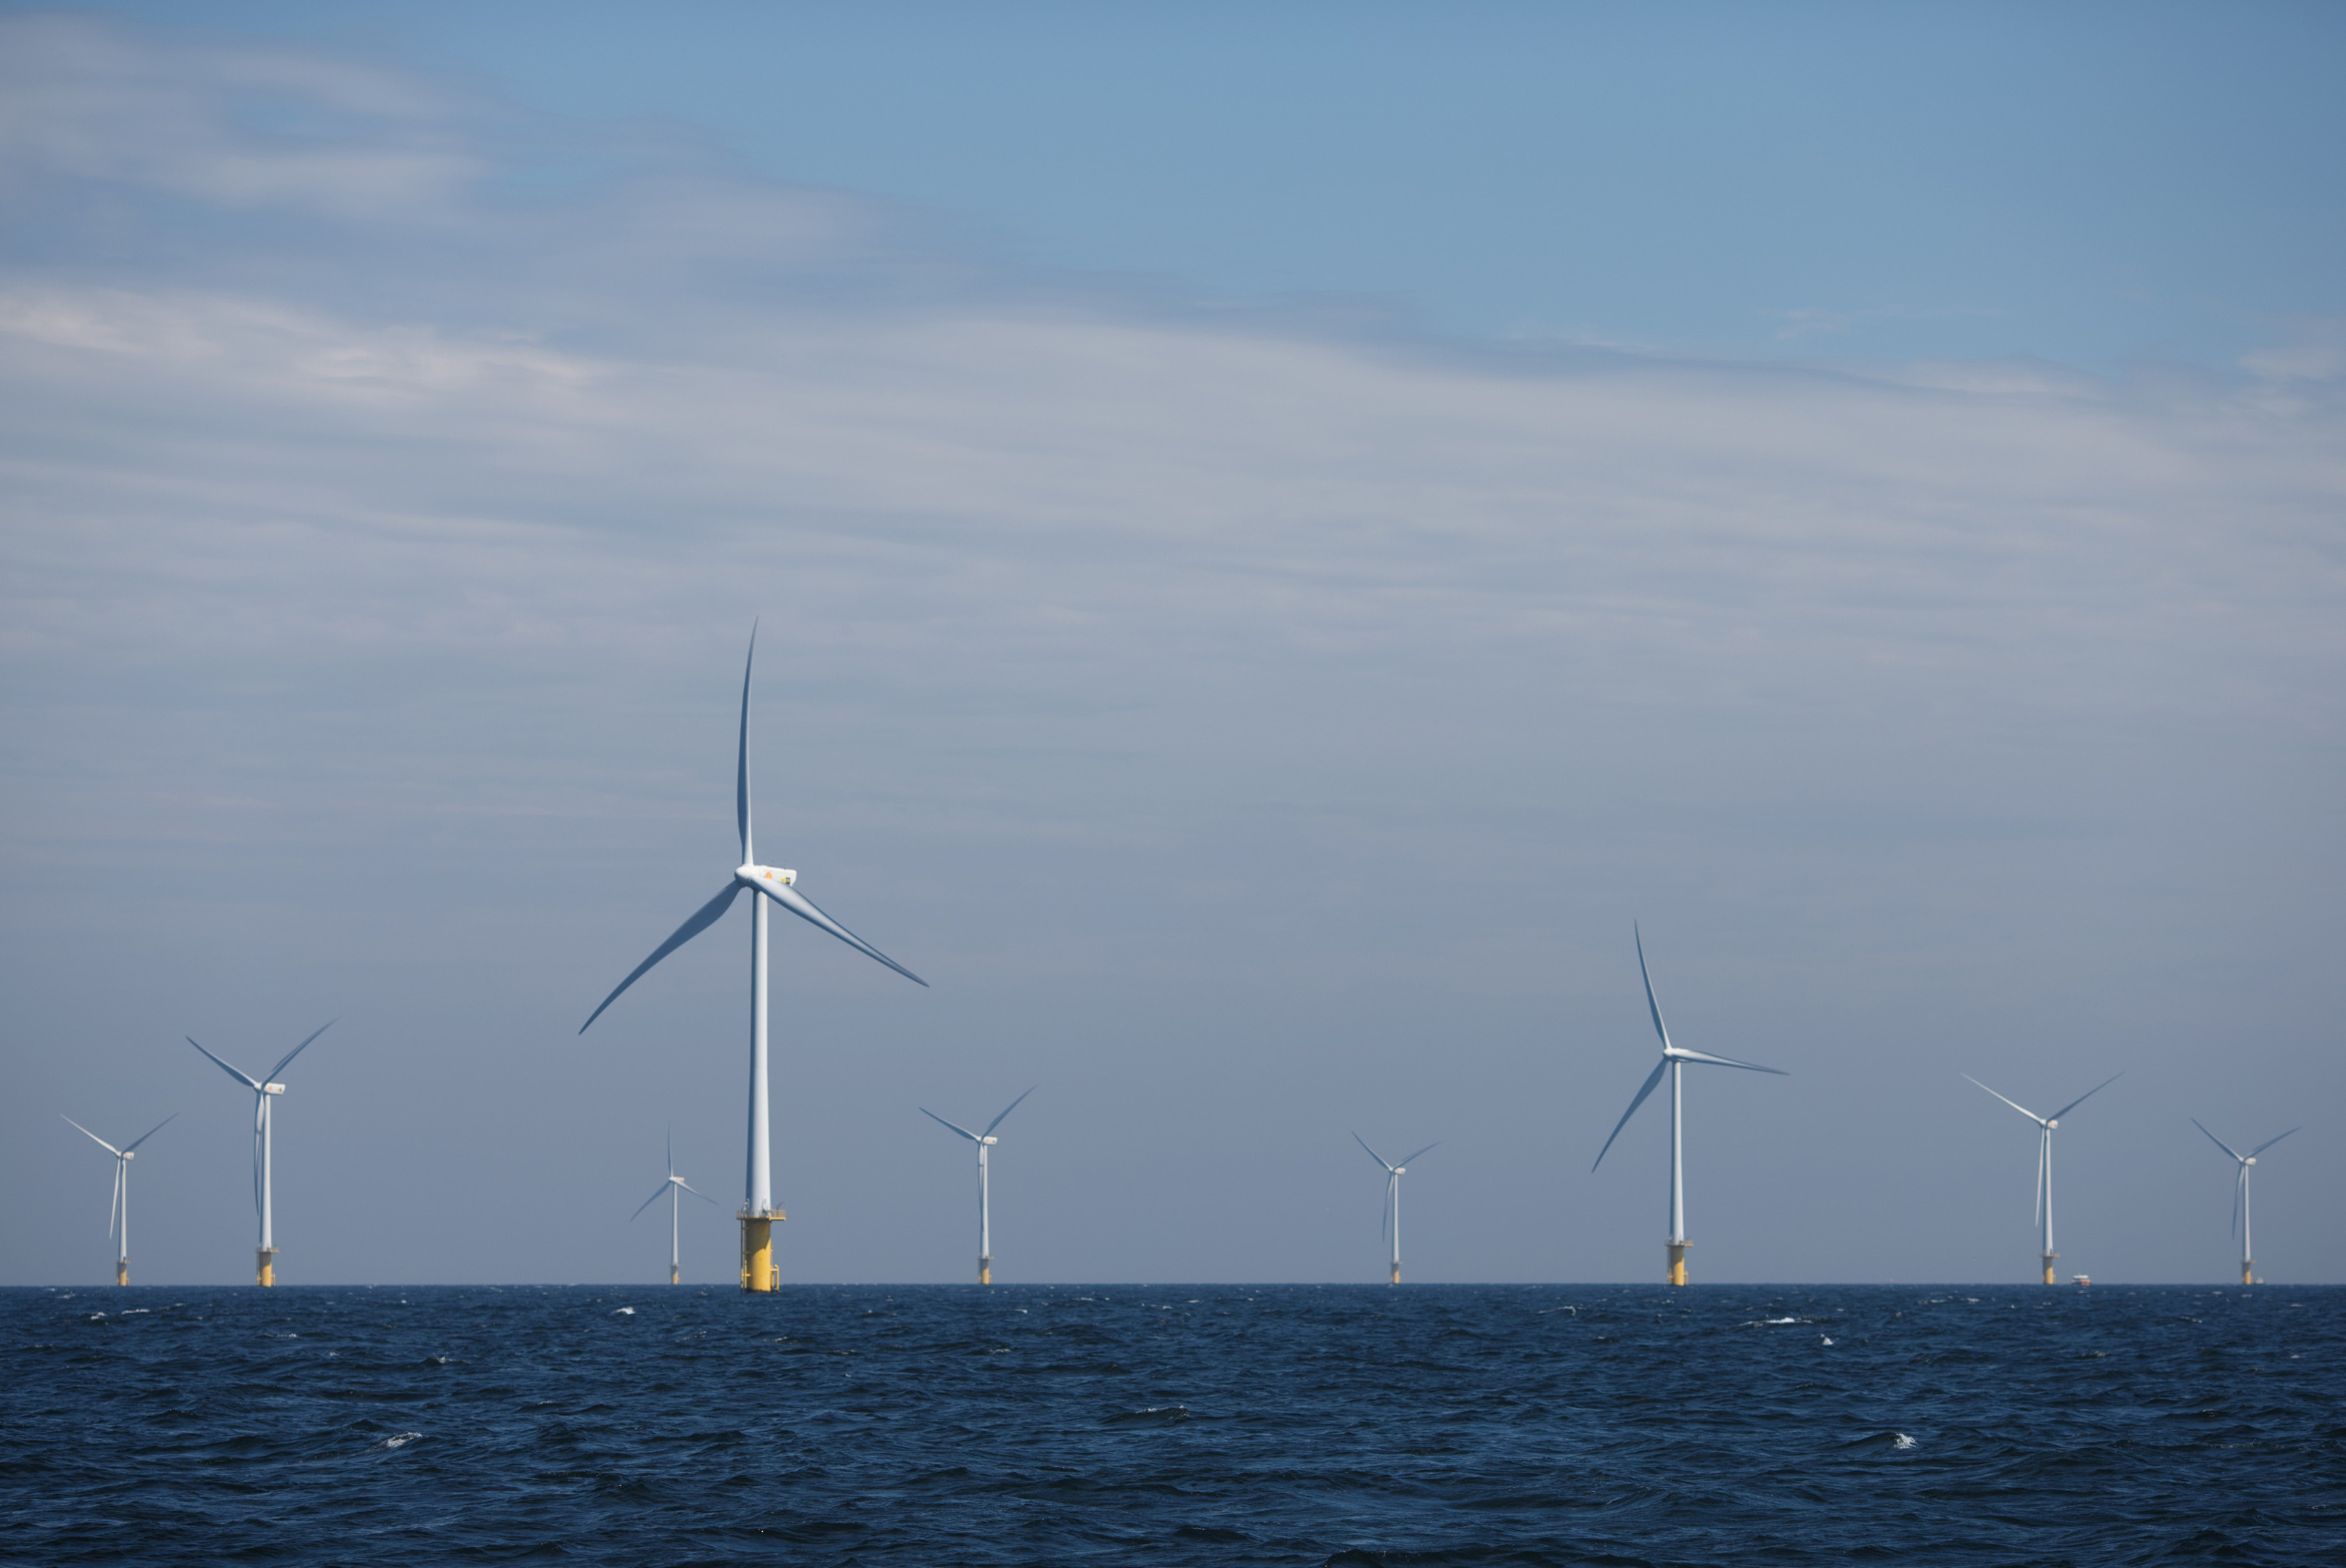 The process could guarantee renewable energy production over the winter months,